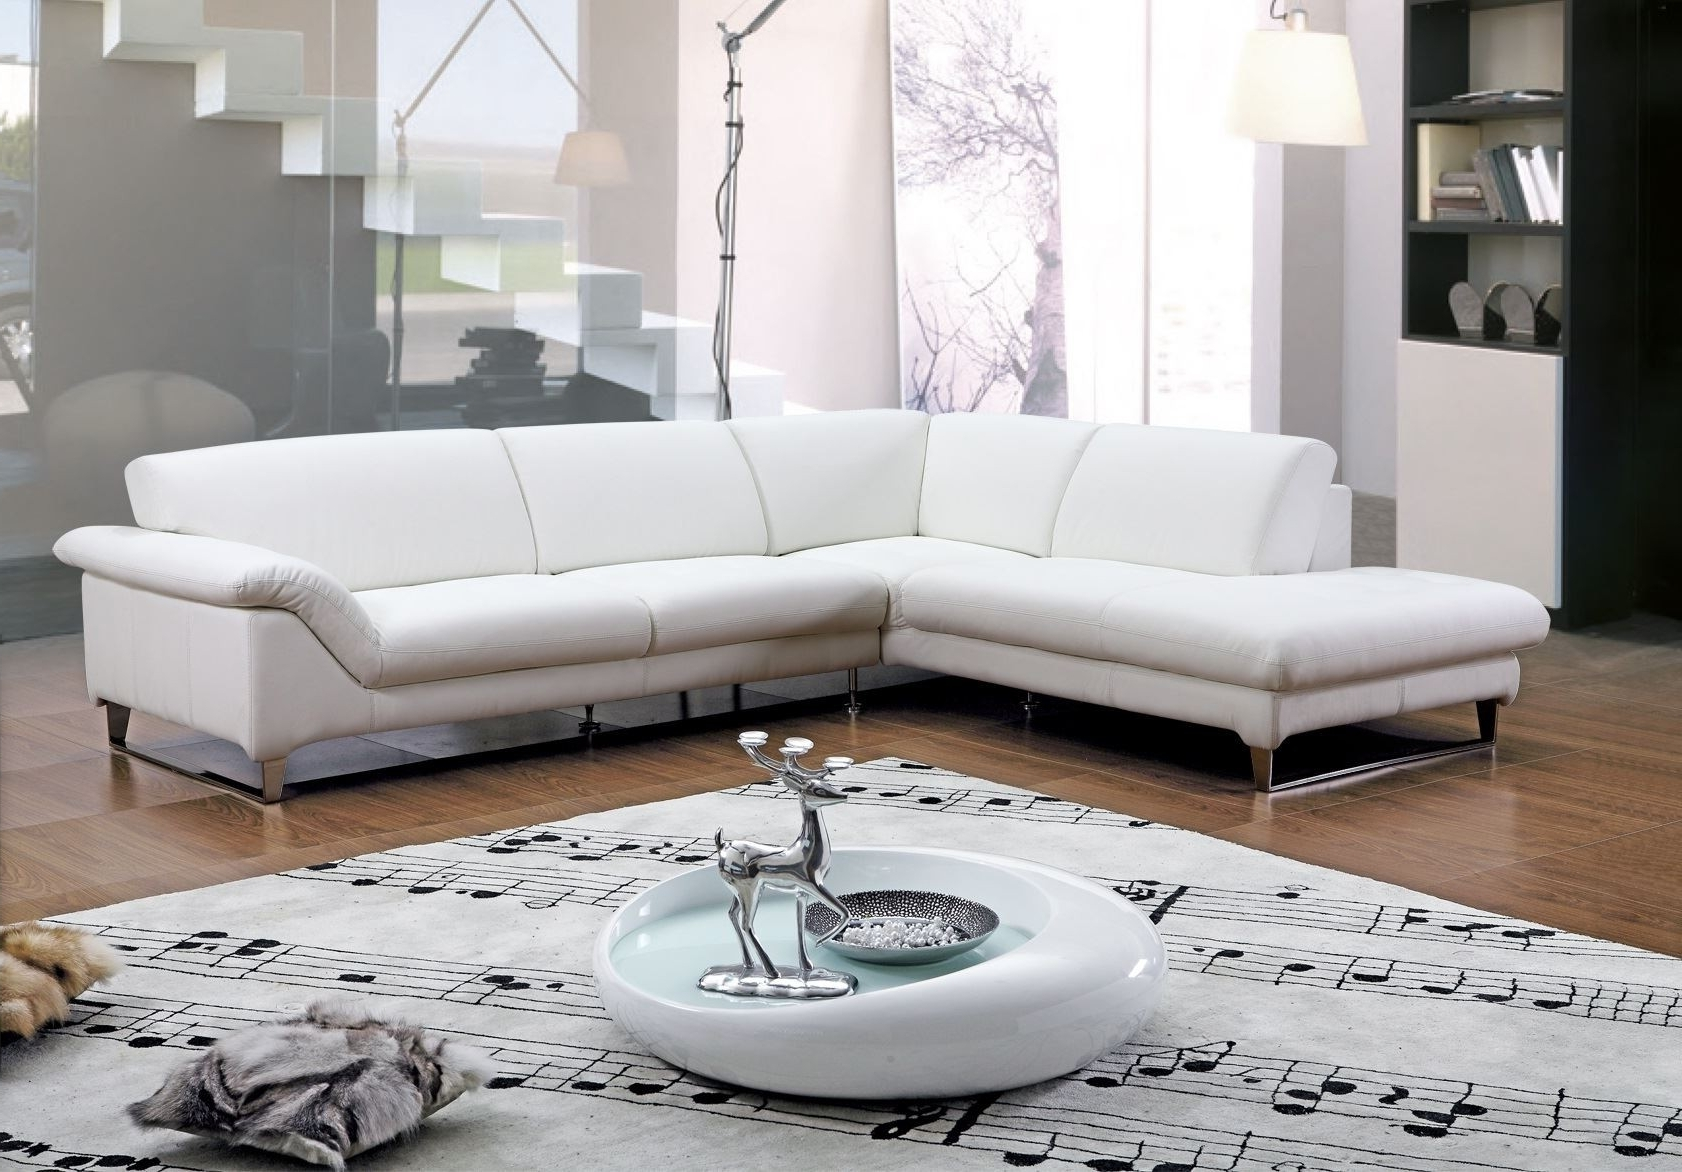 View Photos of White Leather Corner Sofas (Showing 15 of 20 ...